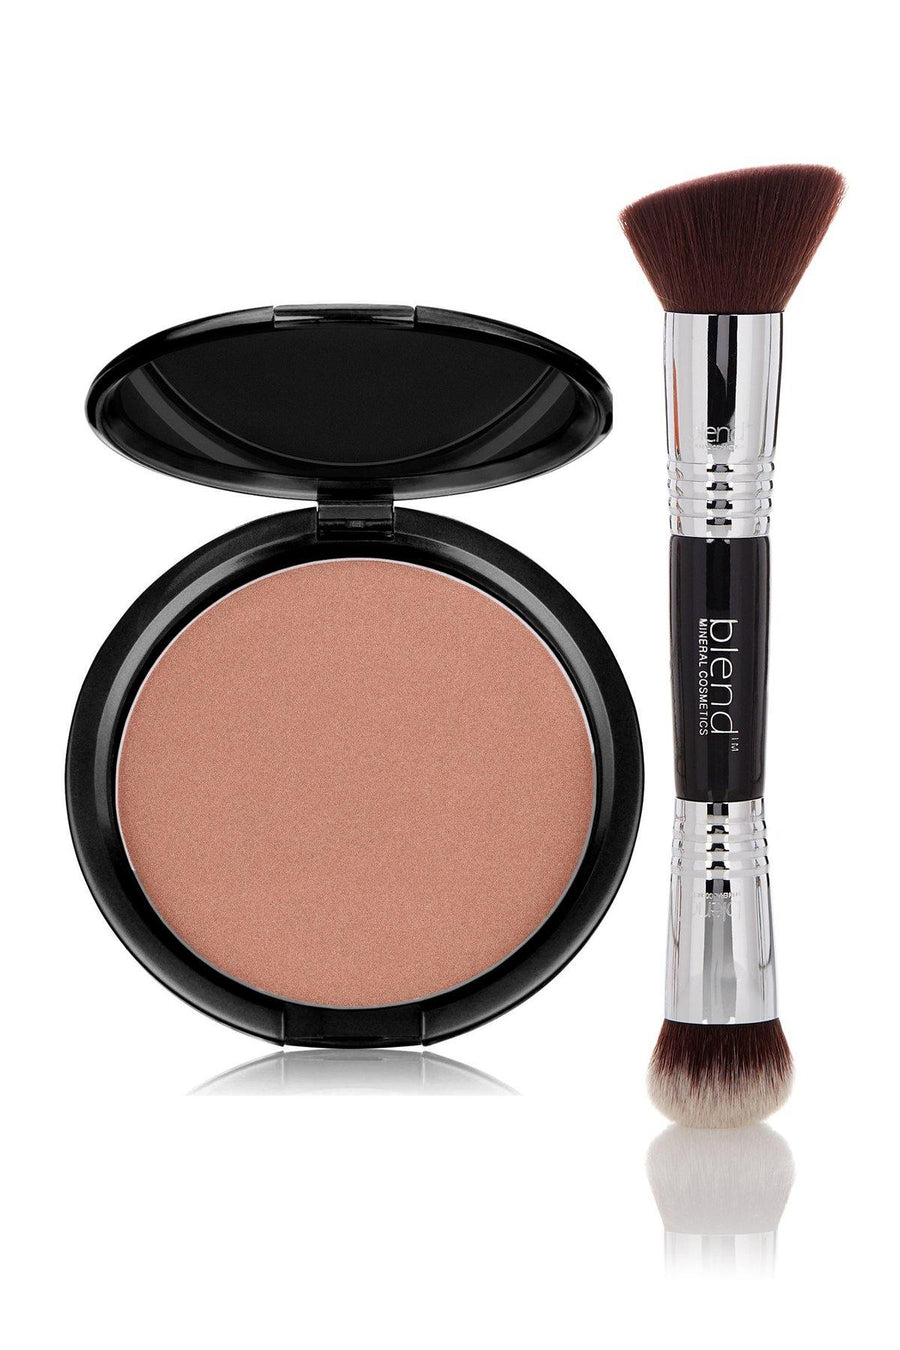 Bronzer Mineral Pressed Powder & Brush Set - Terracotta - Blend Mineral Cosmetics